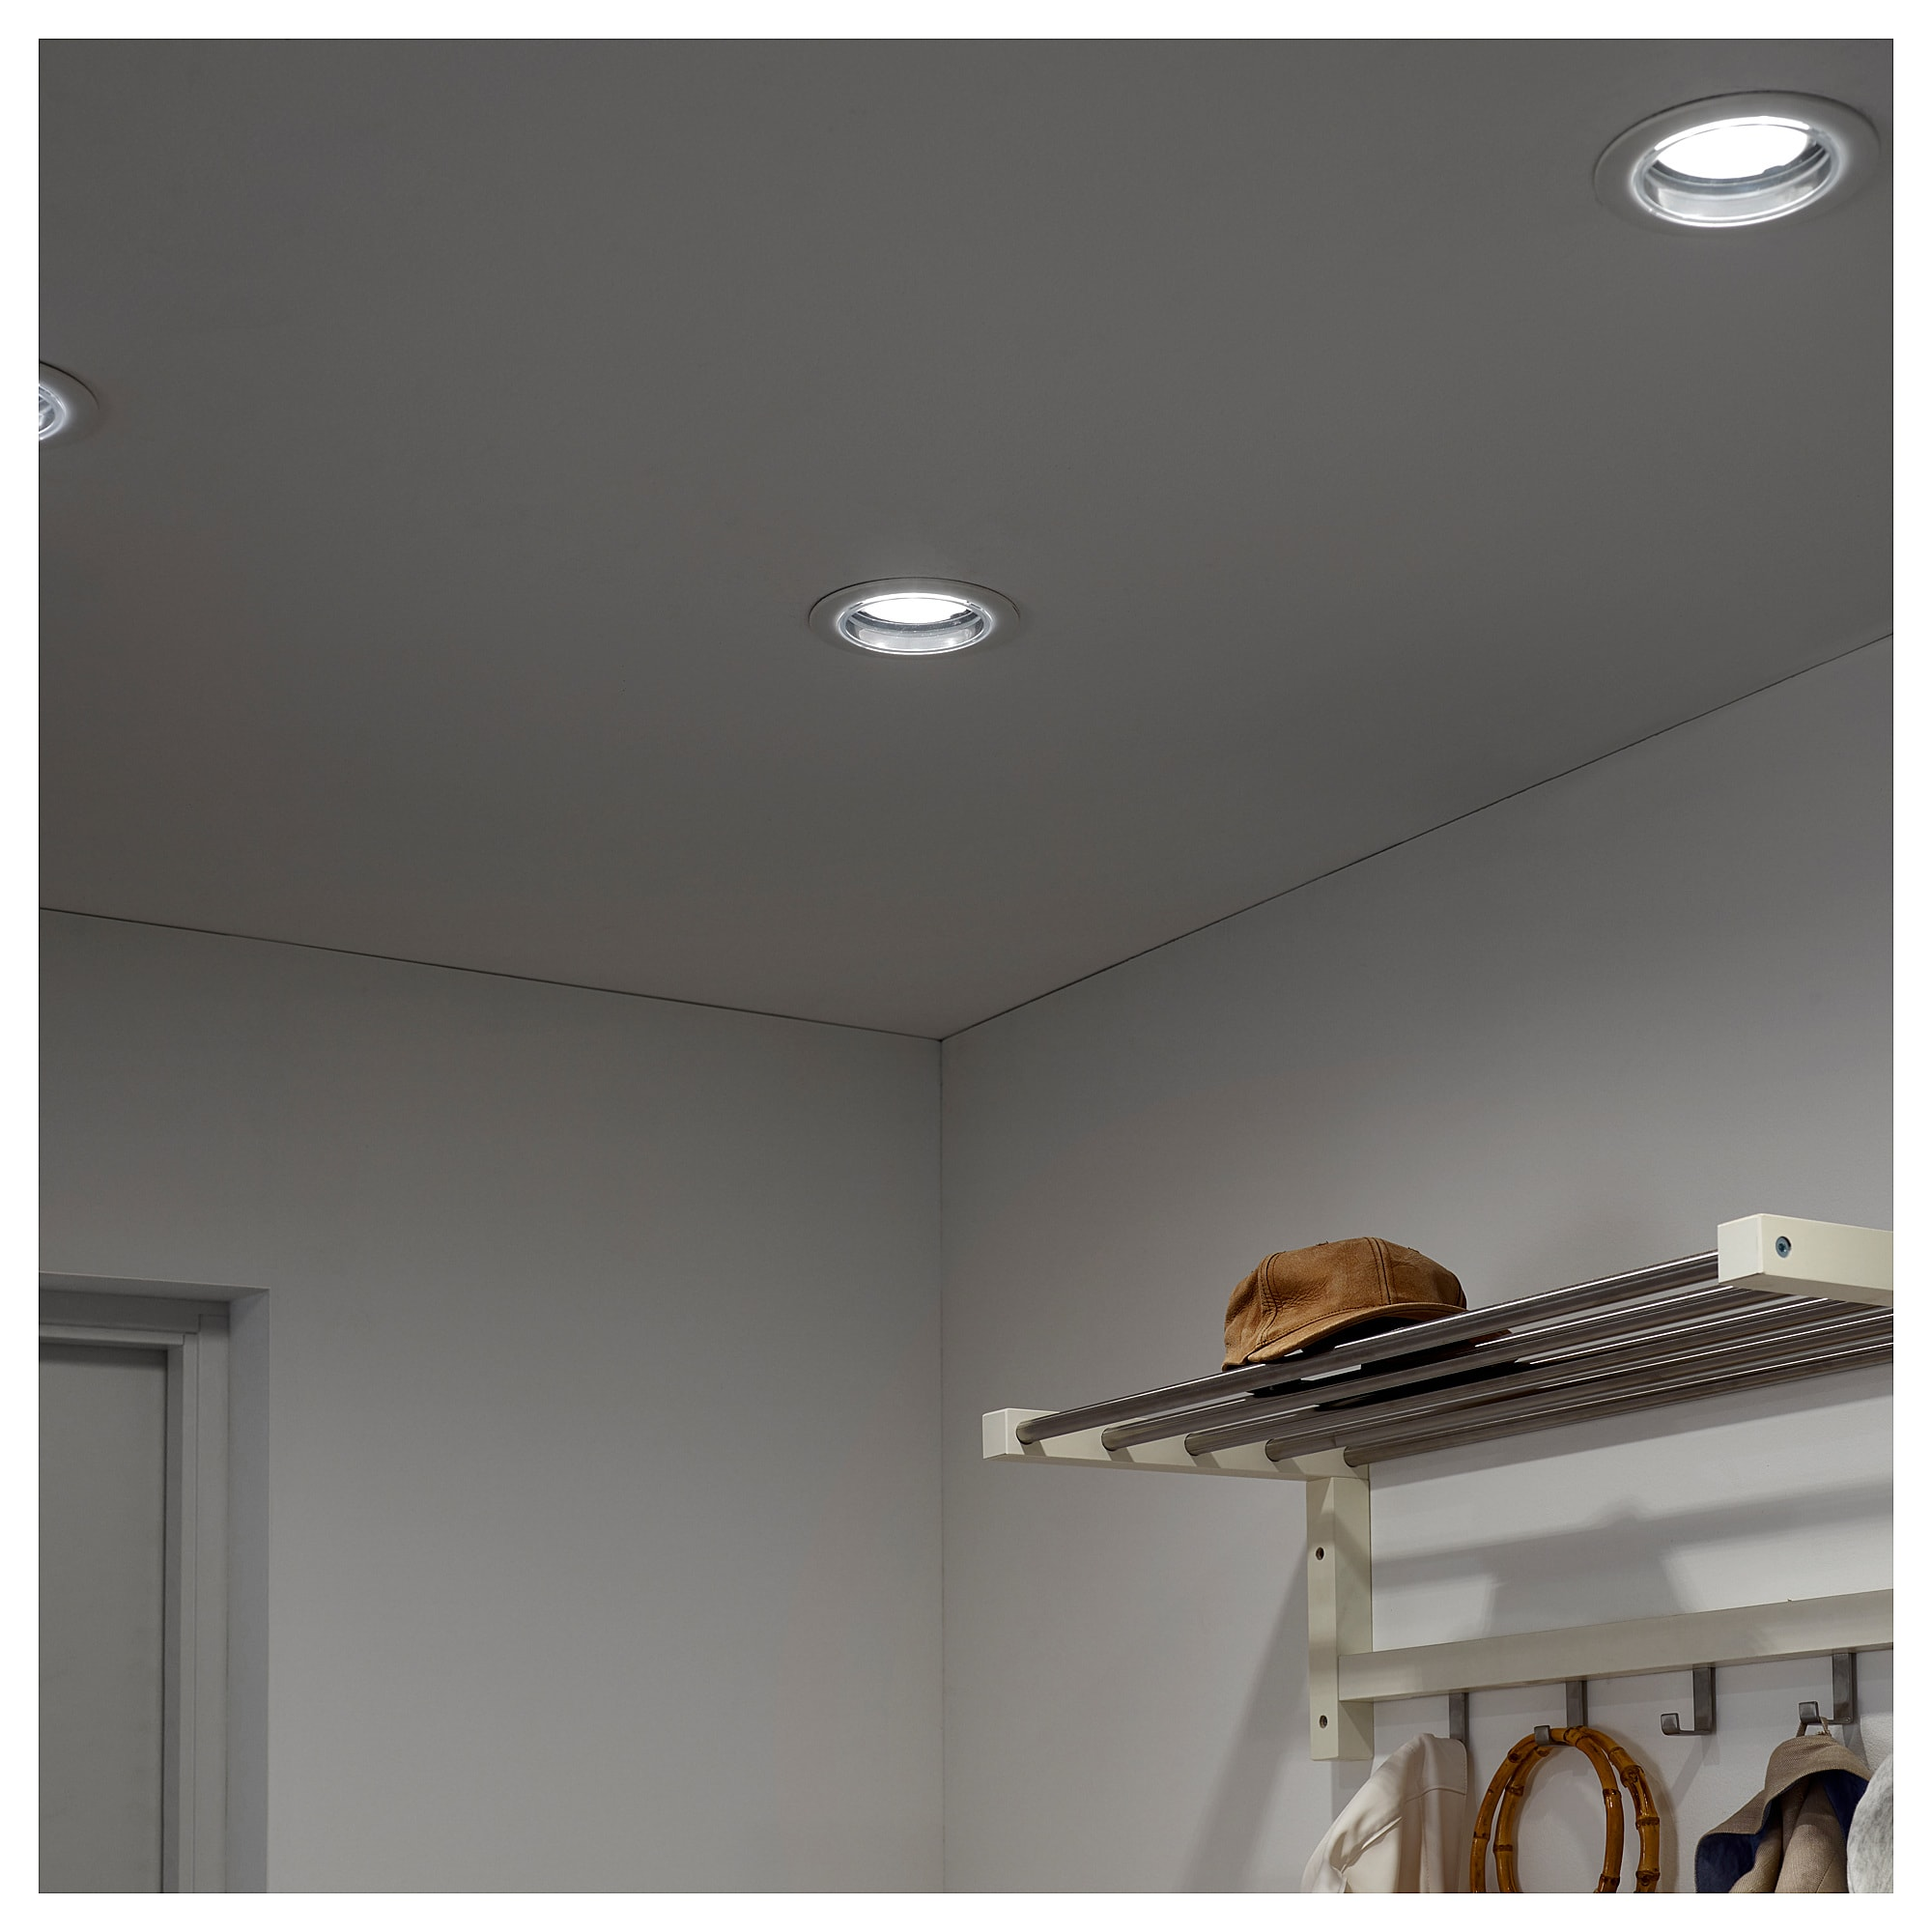 Recessed Lighting - IKEA Qatar